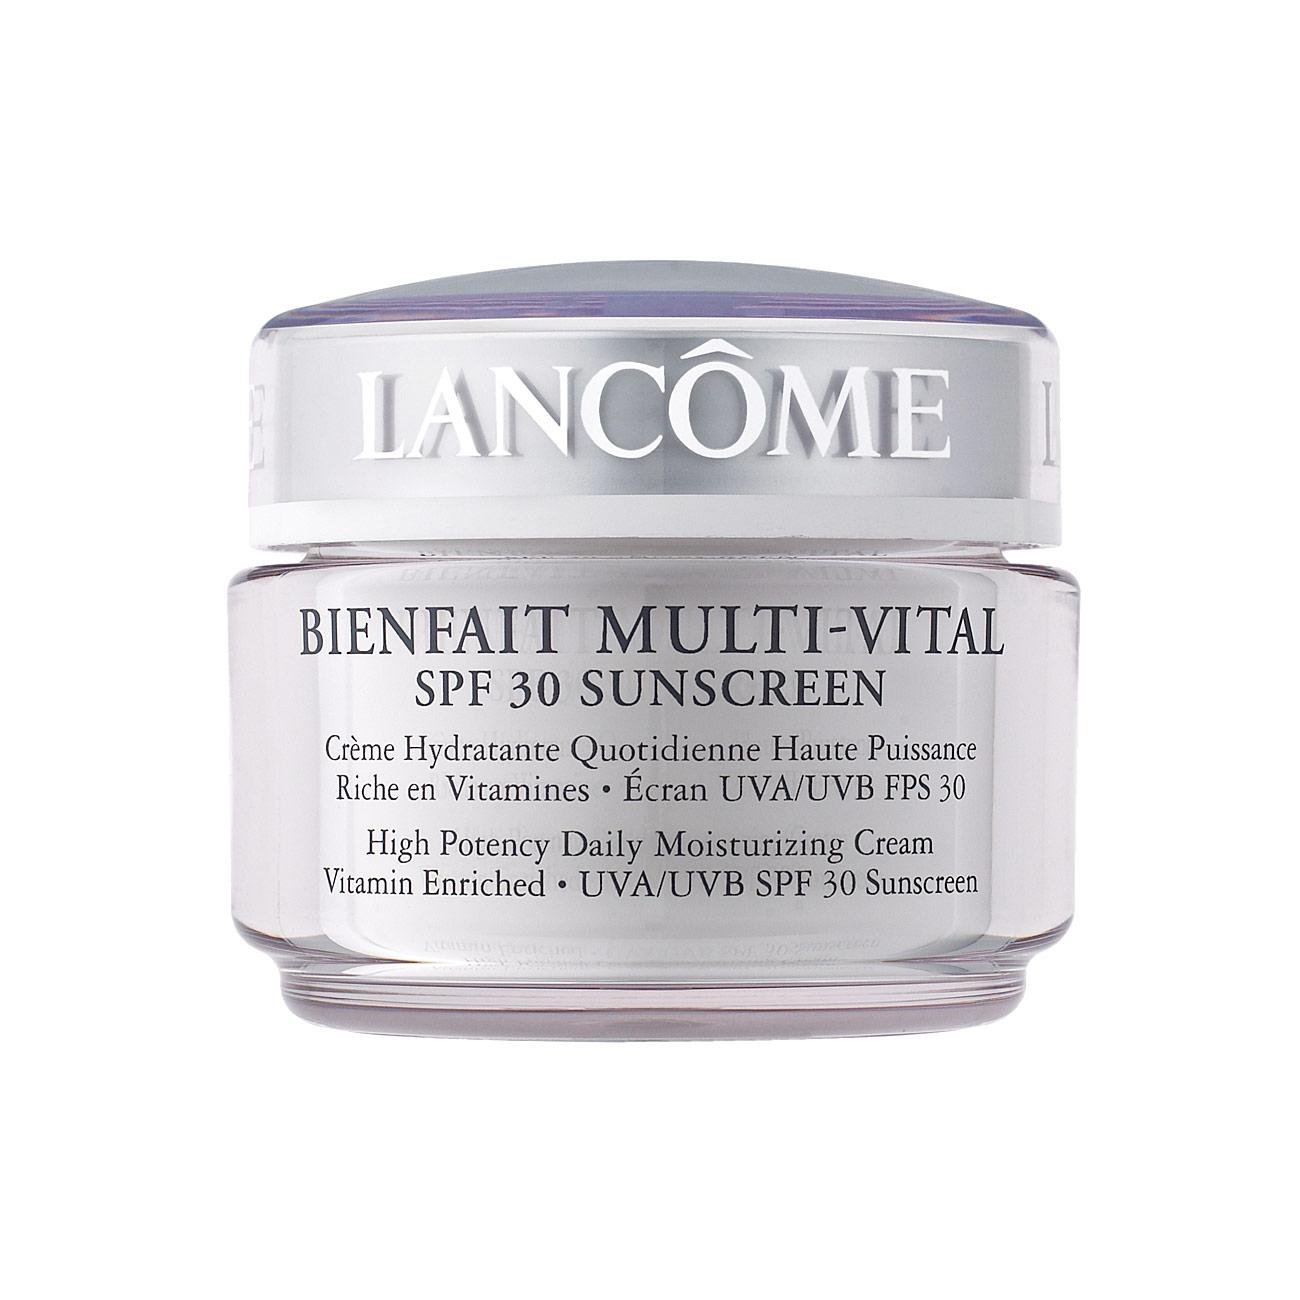 BIENFAIT MULTI-VITAL - SPF 30 CREAM - High Potency Vitamin Enriched Daily Moisturizing Cream